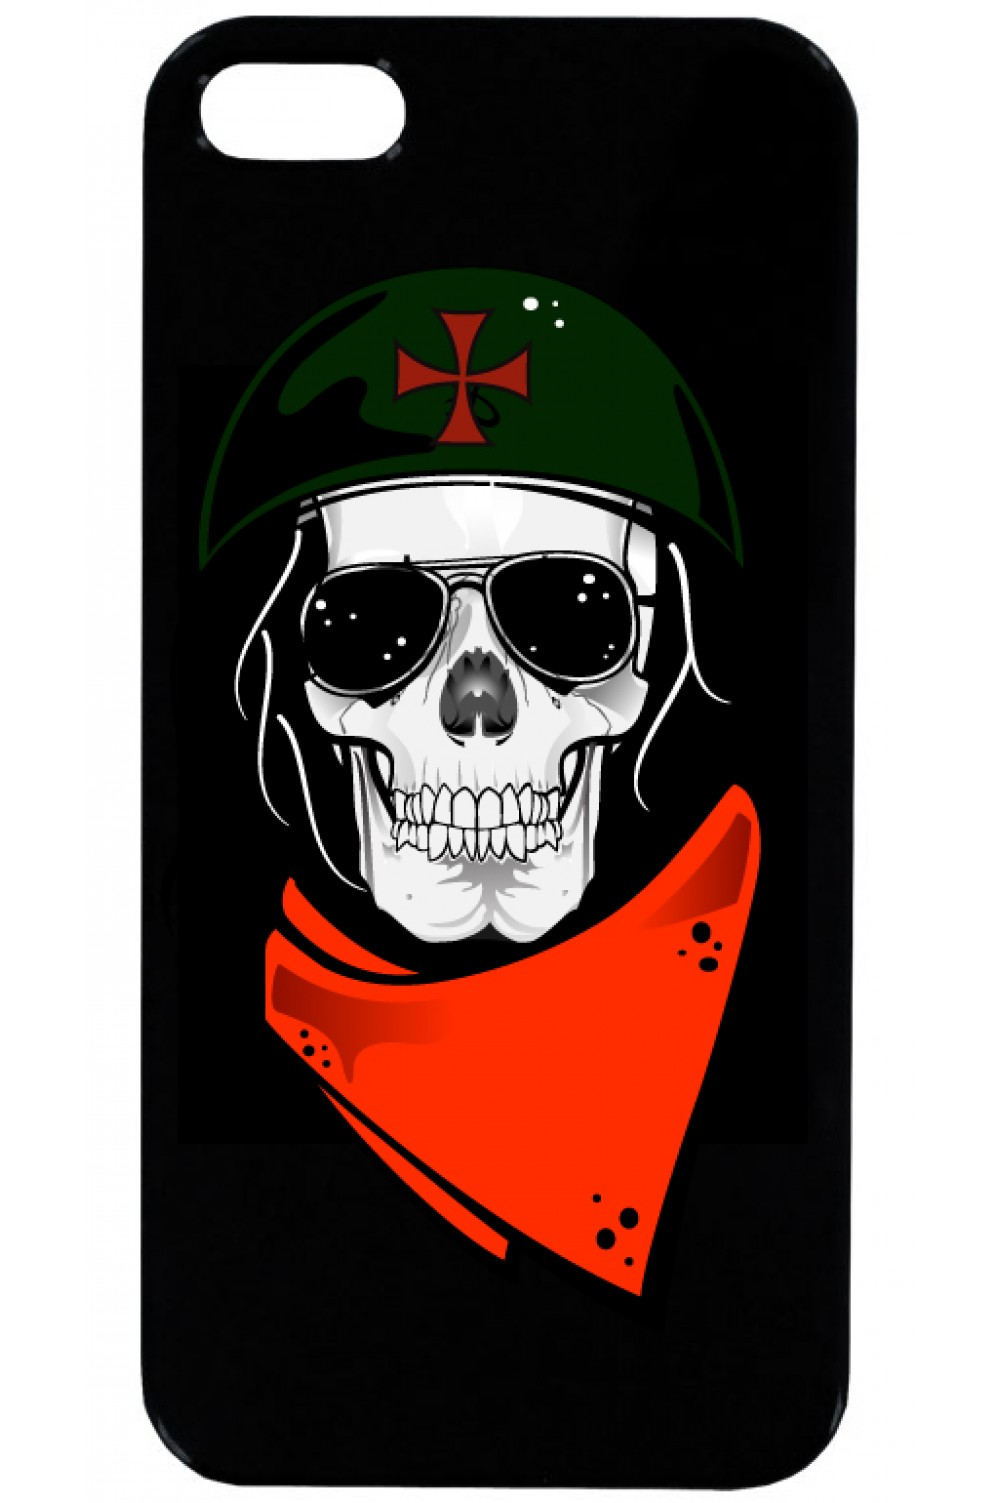 Phone Case - Skull with helmet